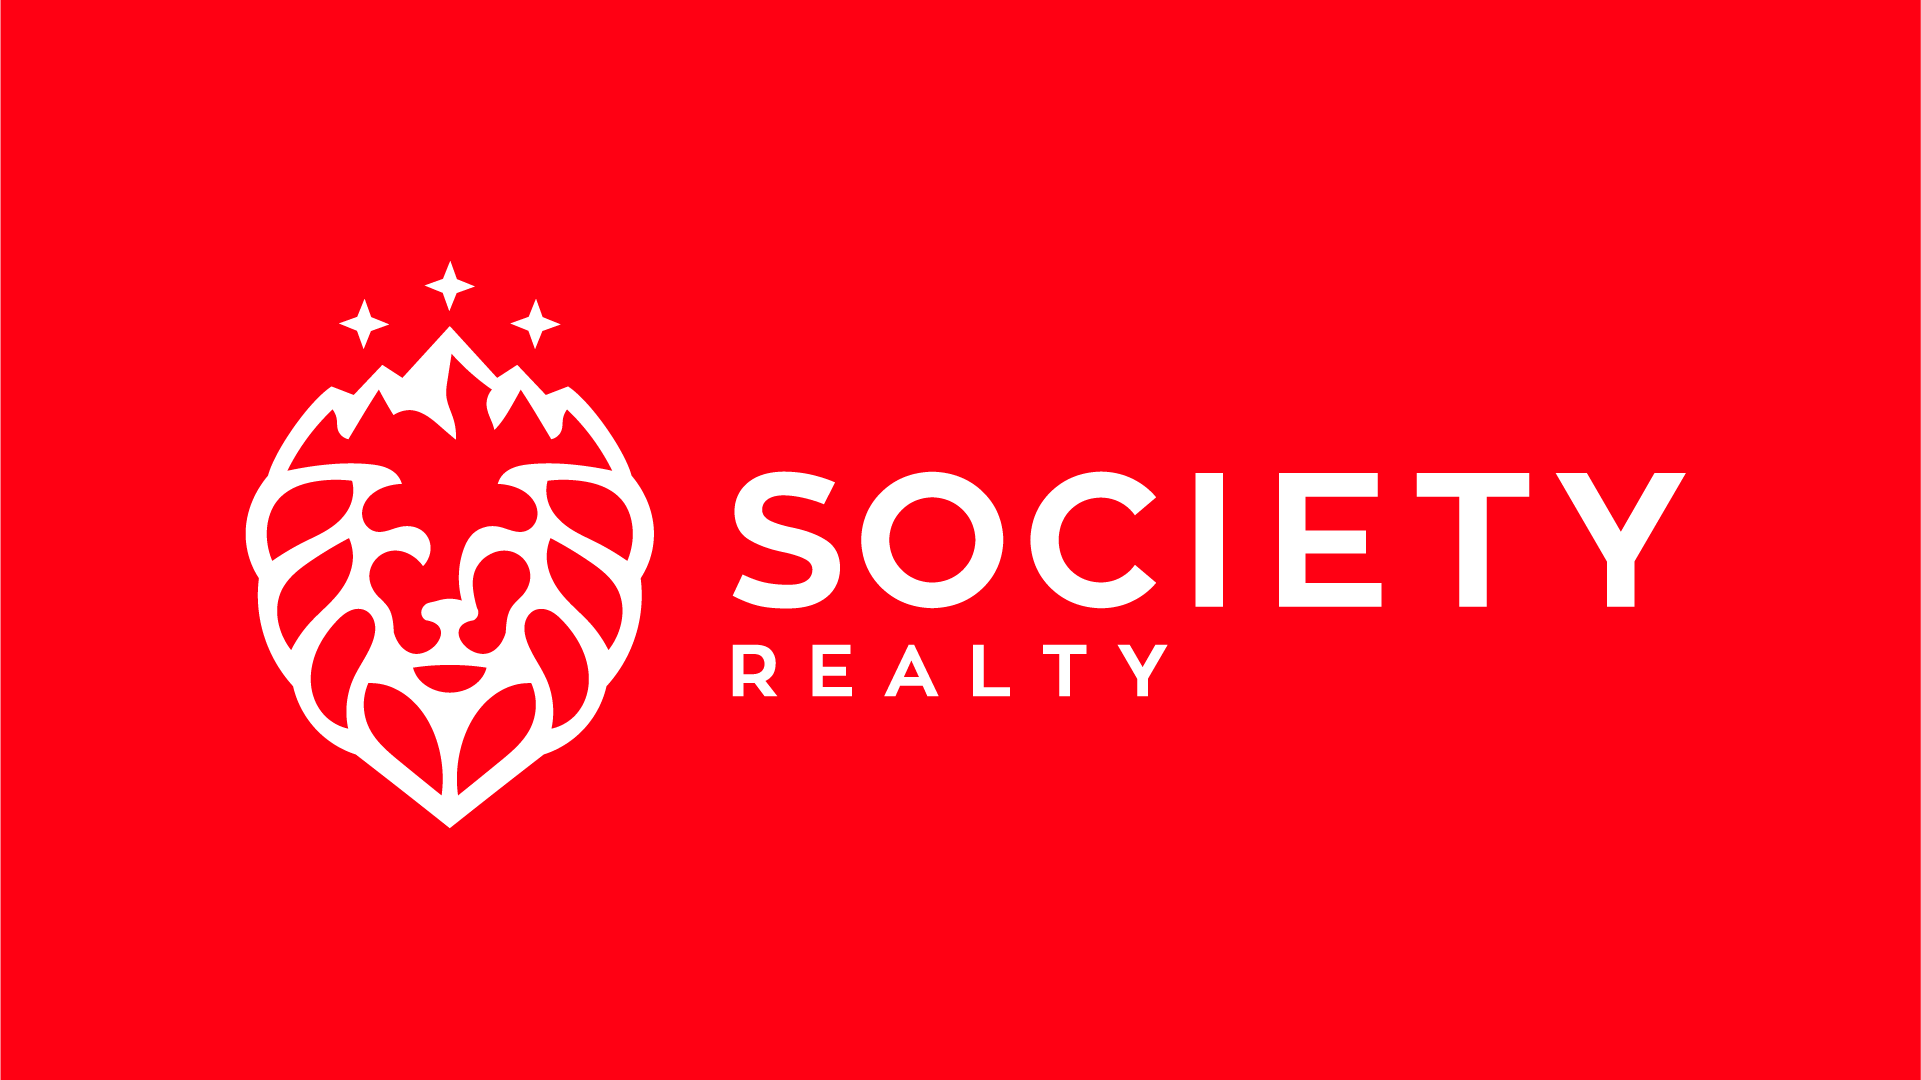 logo on red_1920x1080 copy.png